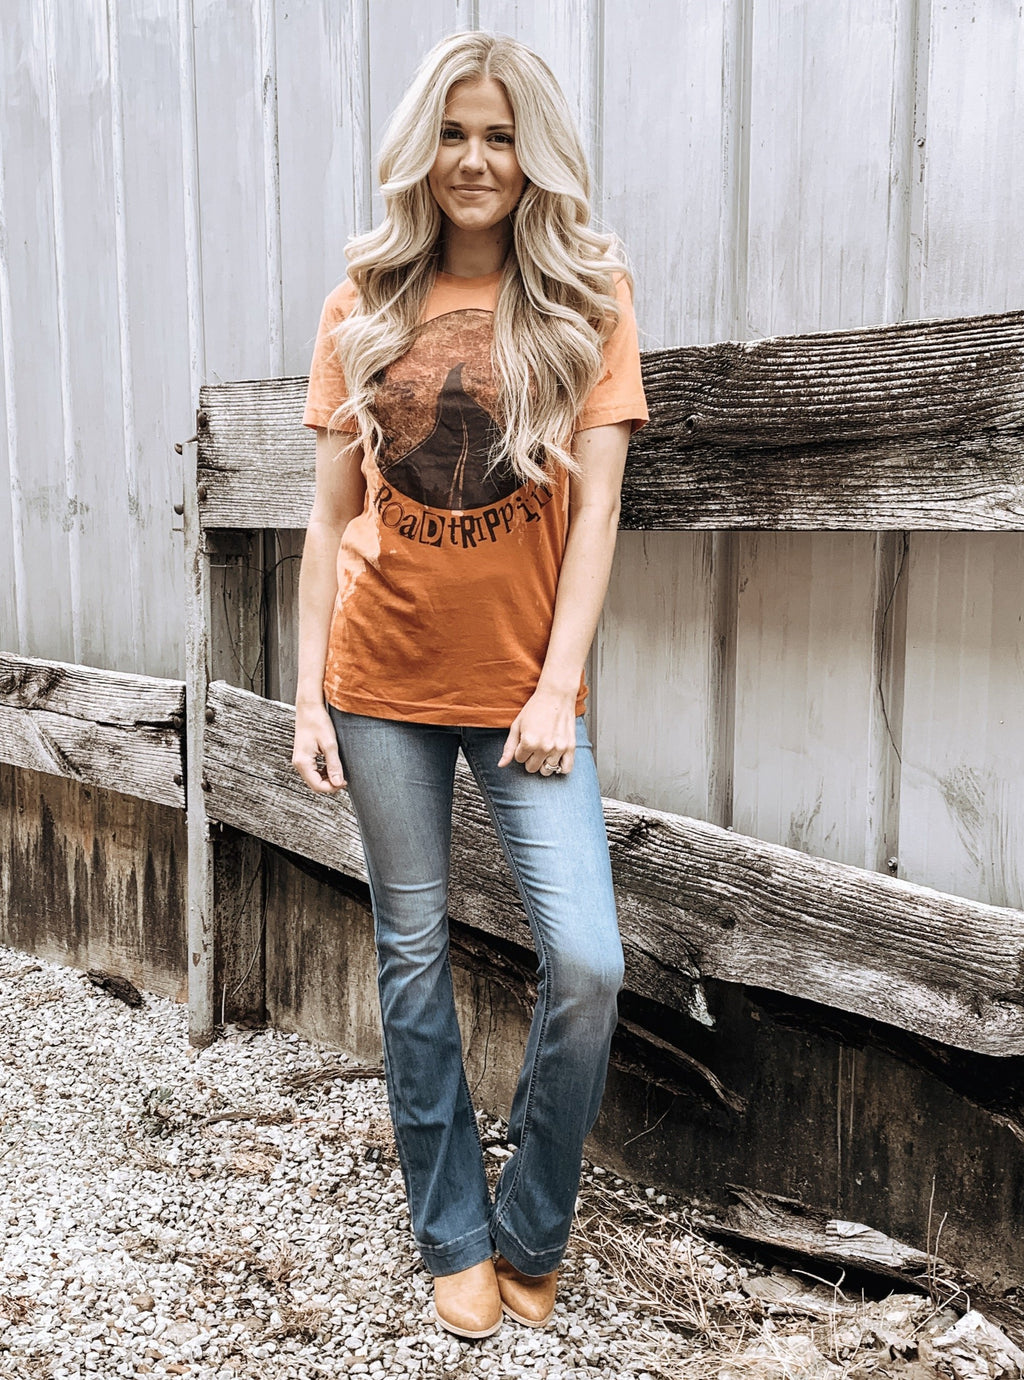 Roadtrippin Tee - Enclothe Boutique